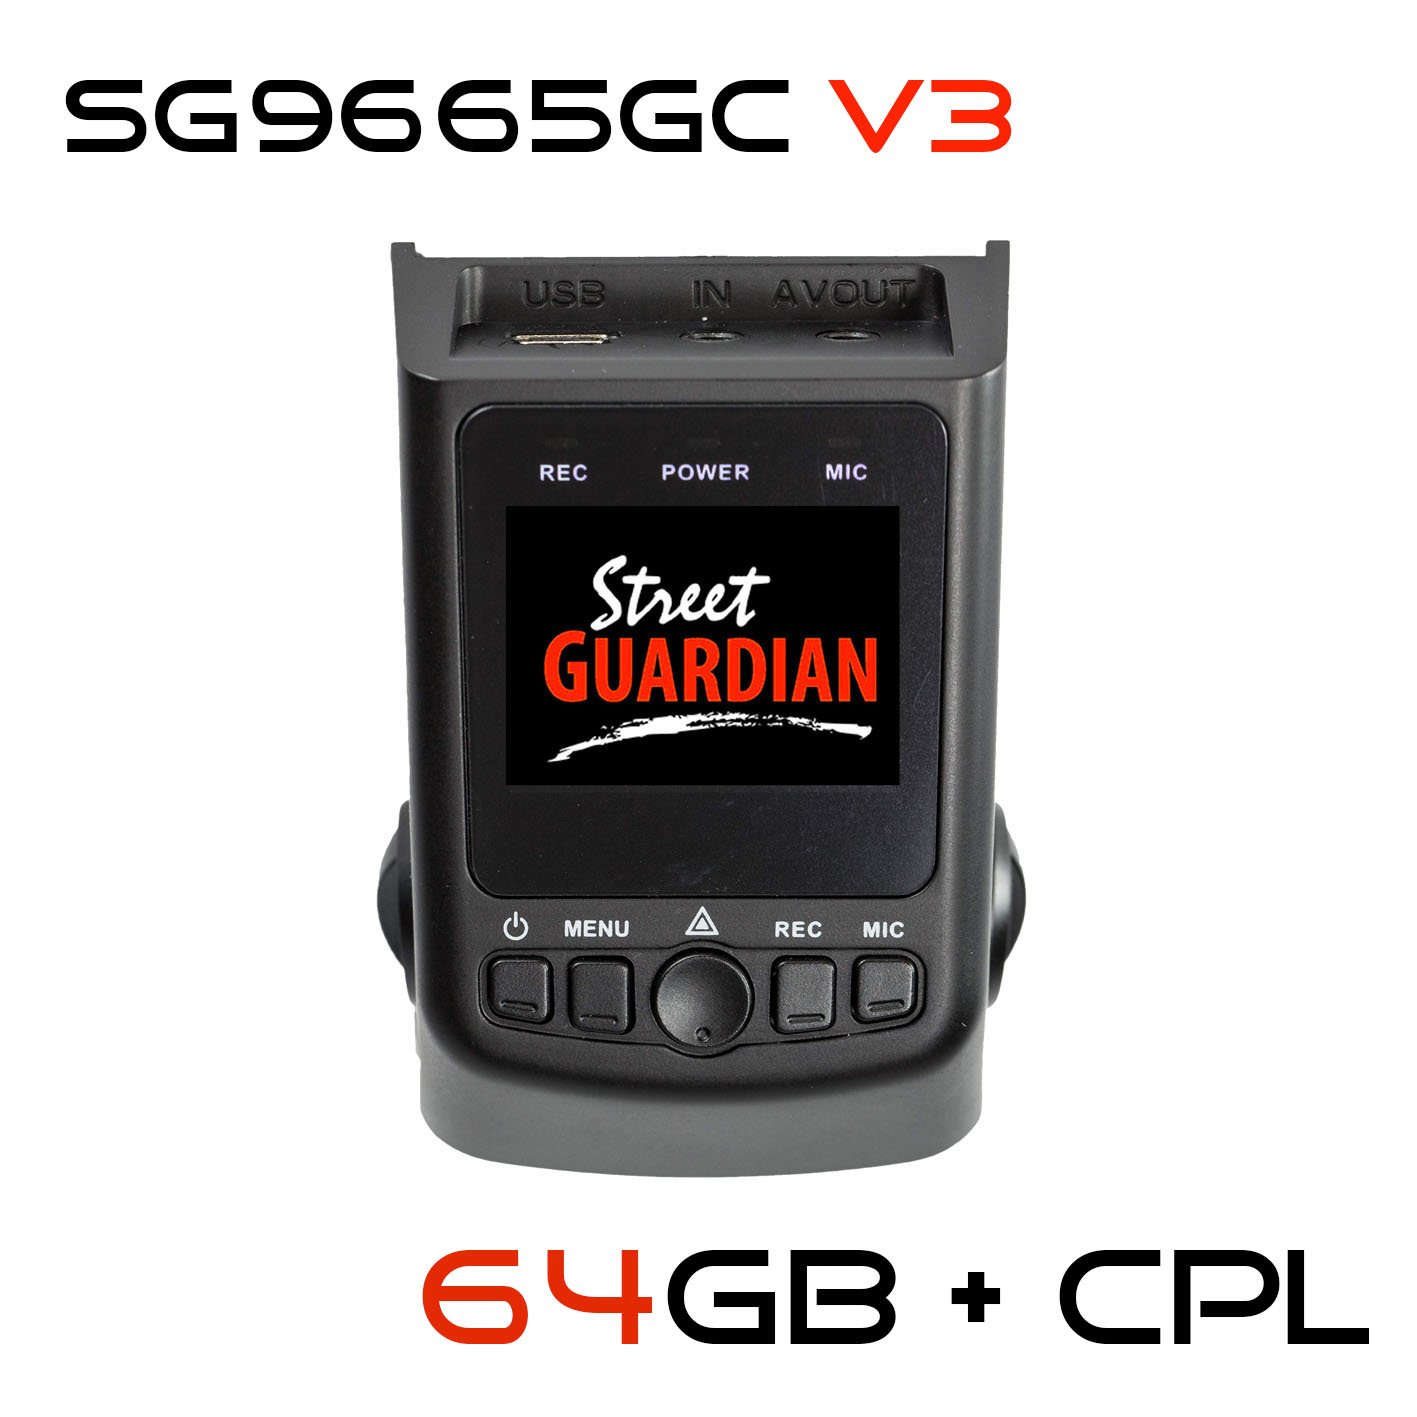 Street Guardian SG9665GC v3 2017 edition + 64GB microSD Card + CPL + USB/OTG Android Card Reader + GPS, Supercapacitor Sony Exmor IMX322 WDR CMOS Sensor DashCam 1080P 30FPS (Best Of - DashCamTalk) by Street Guardian